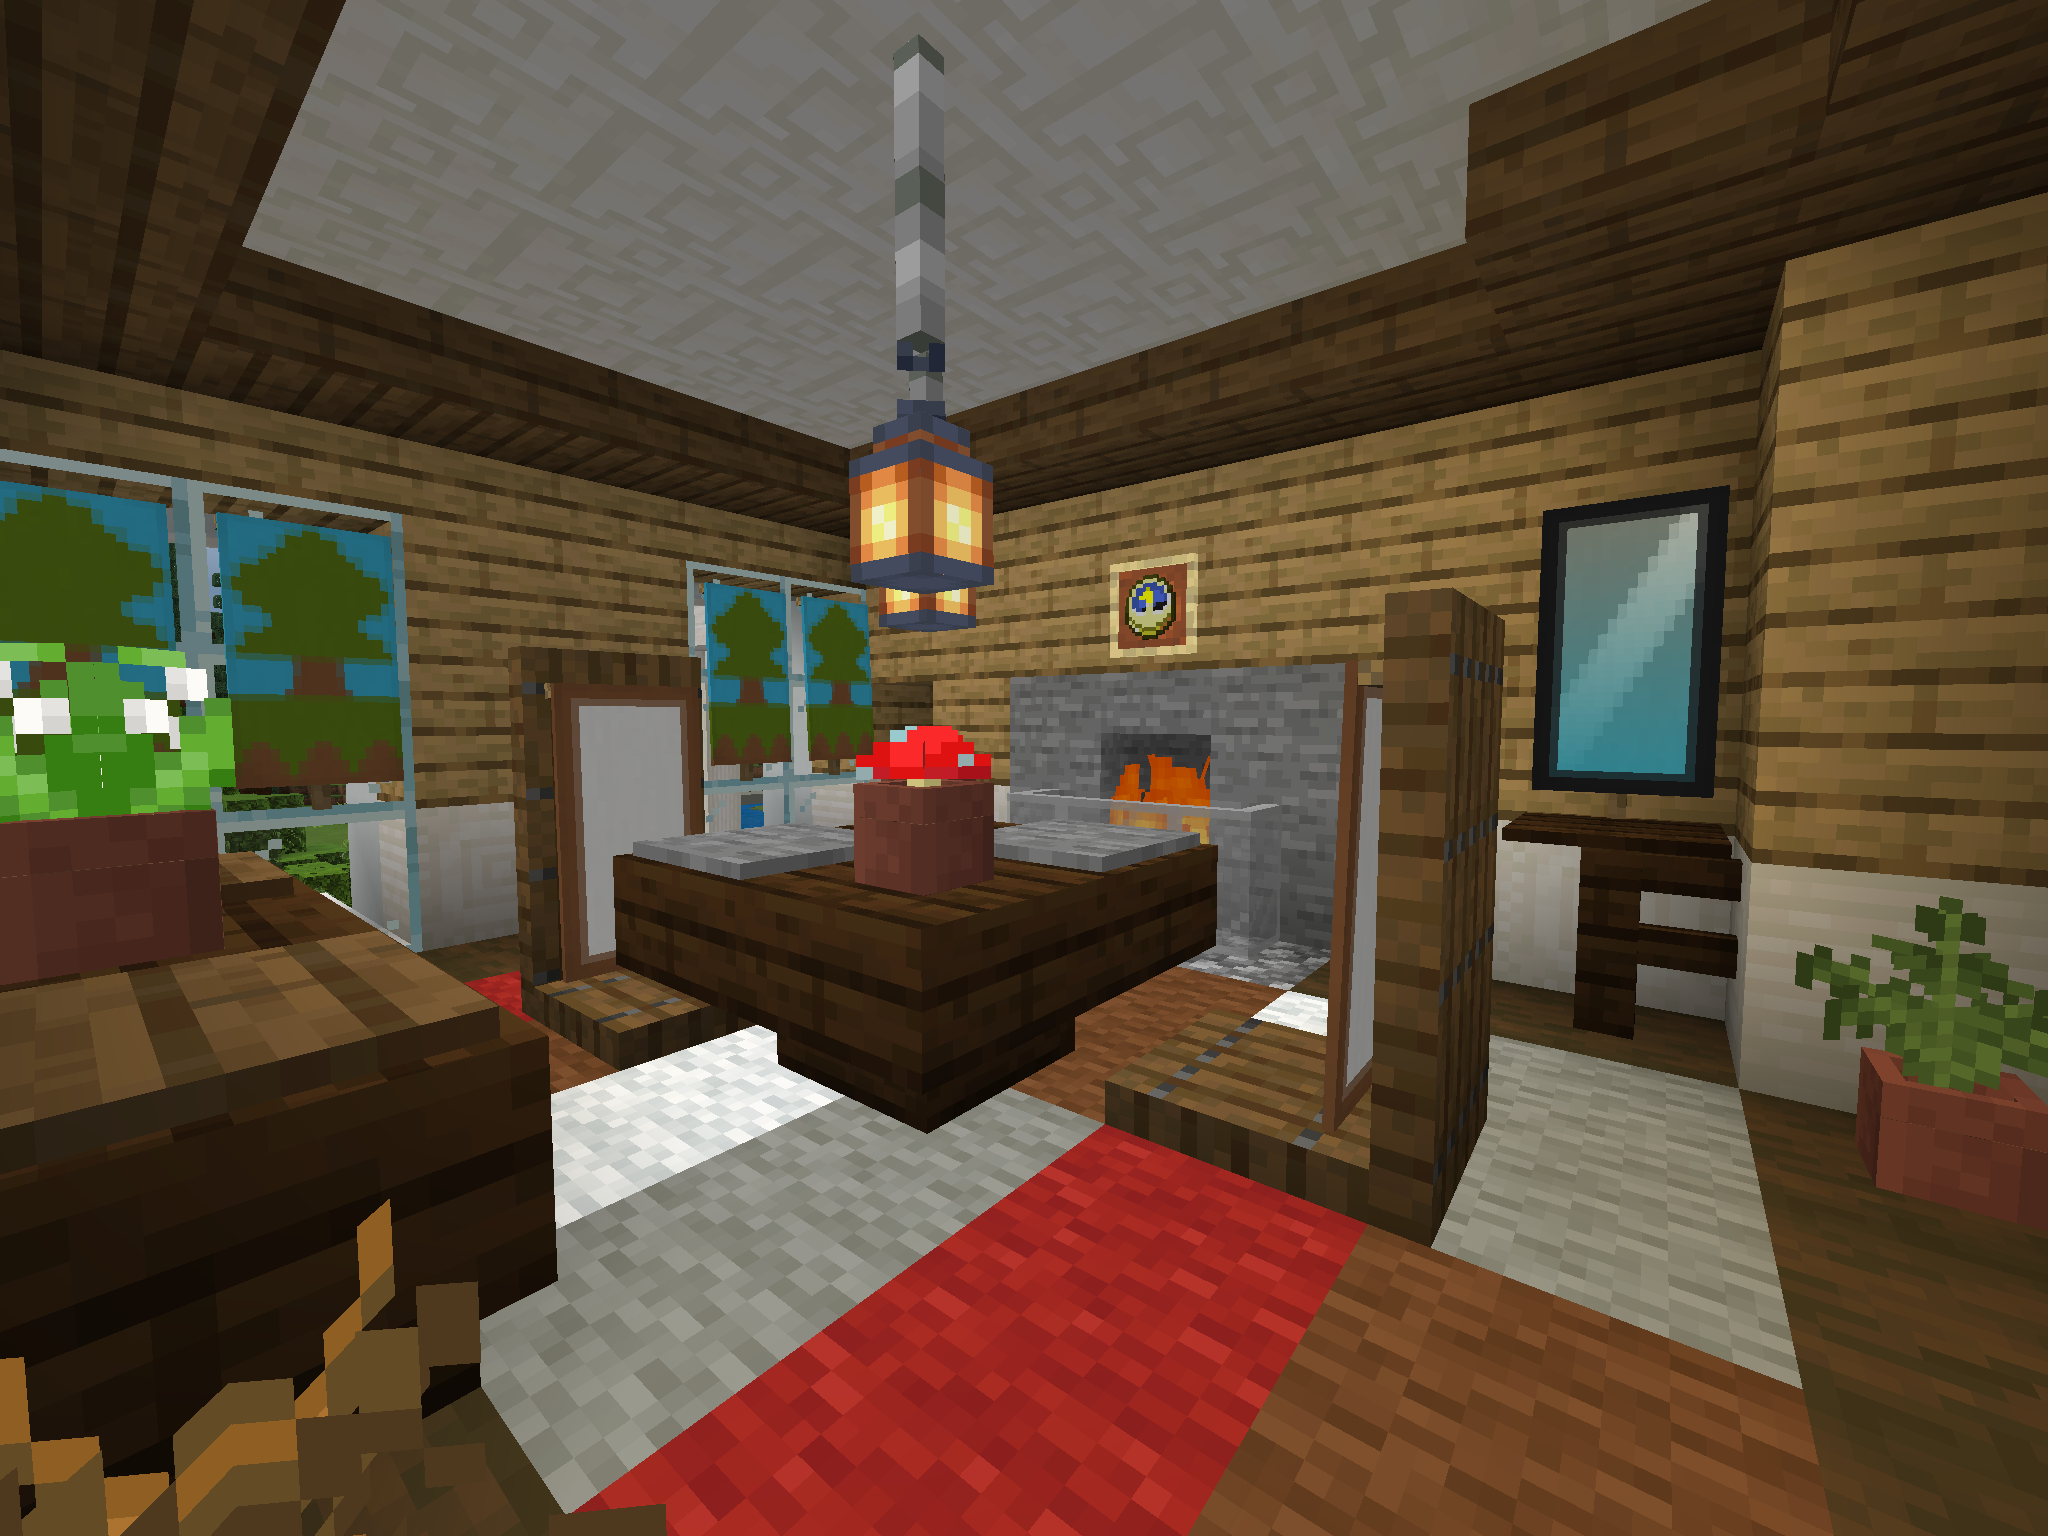 Private Dining Room Minecraft Interior Design Minecraft Houses